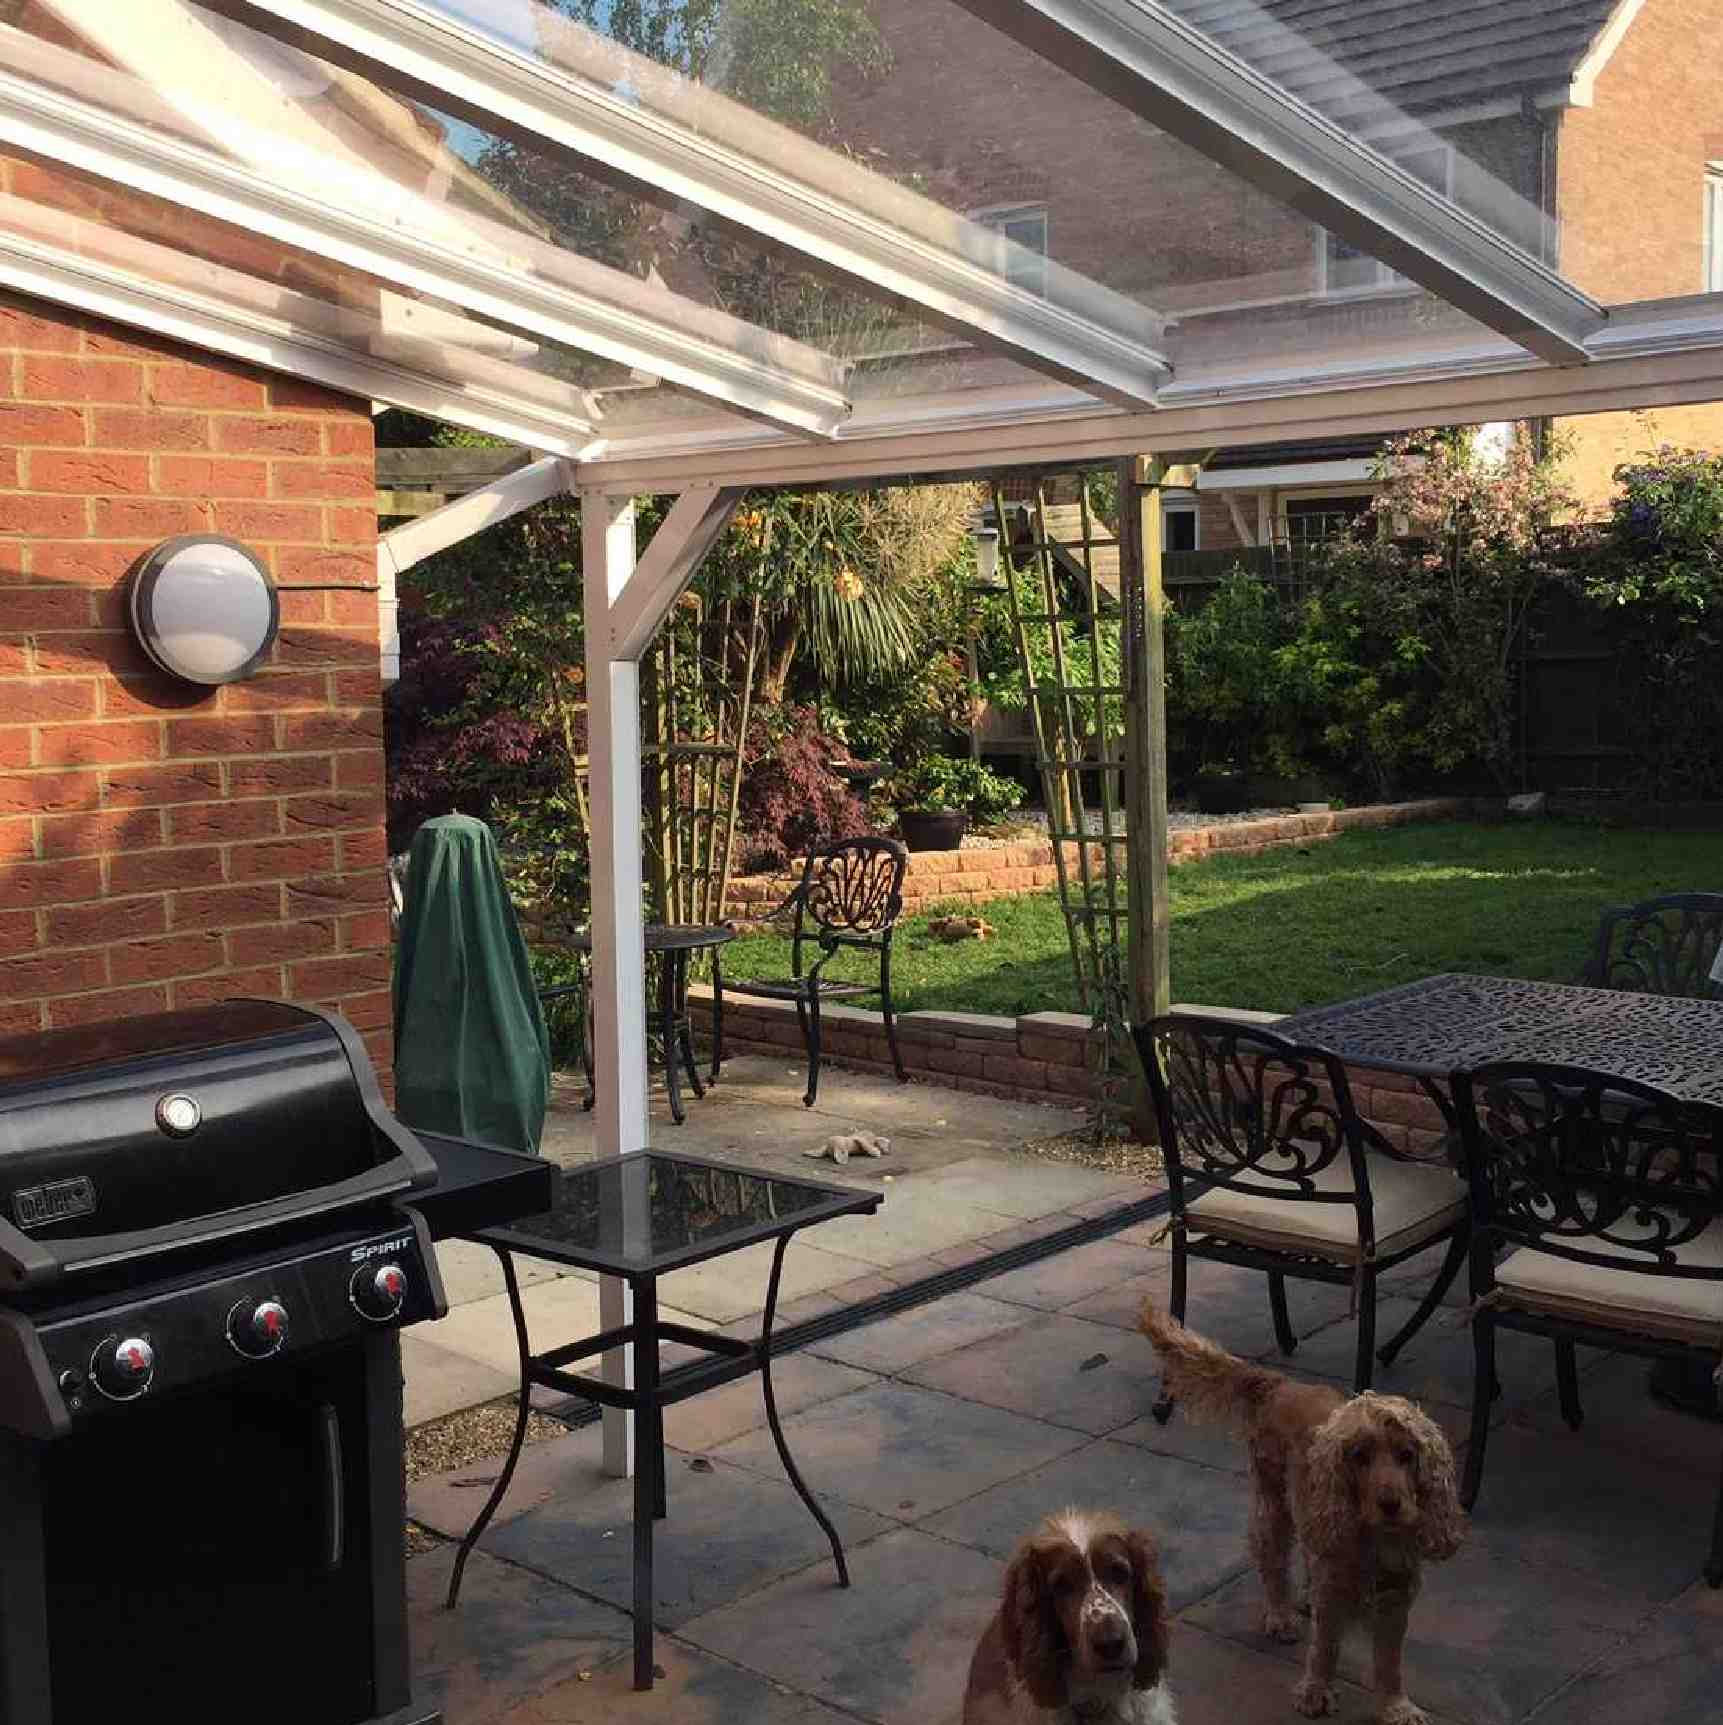 Omega Verandah with 16mm Polycarbonate Glazing - 11.6m (W) x 2.0m (P), (5) Supporting Posts